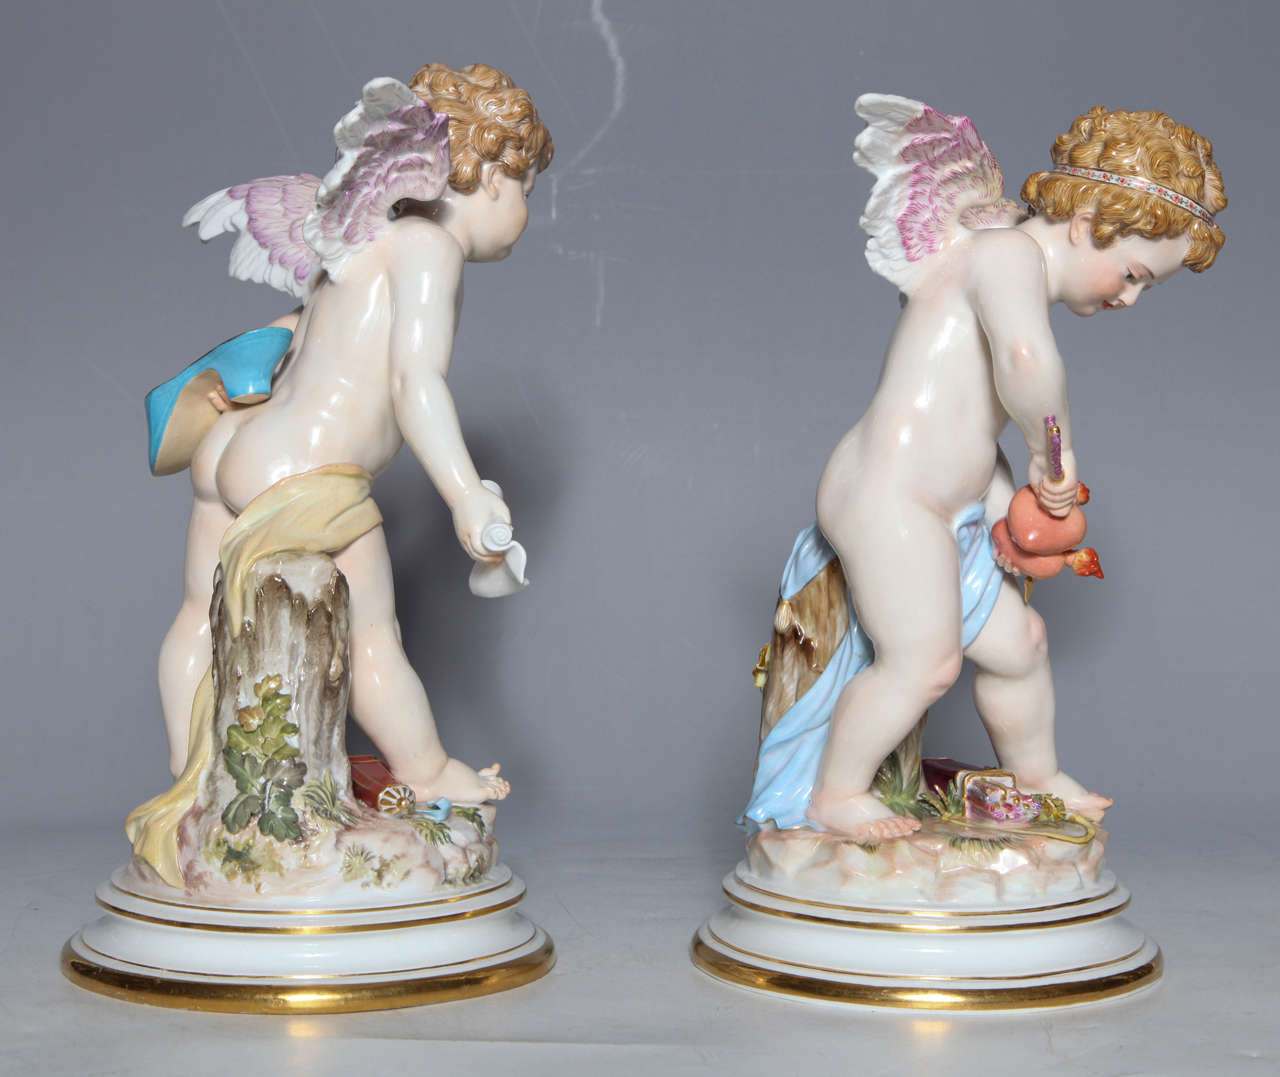 Rococo Revival Meissen Porcelain Large Devisenkinder Cupid Figurines with Markings 1860s For Sale